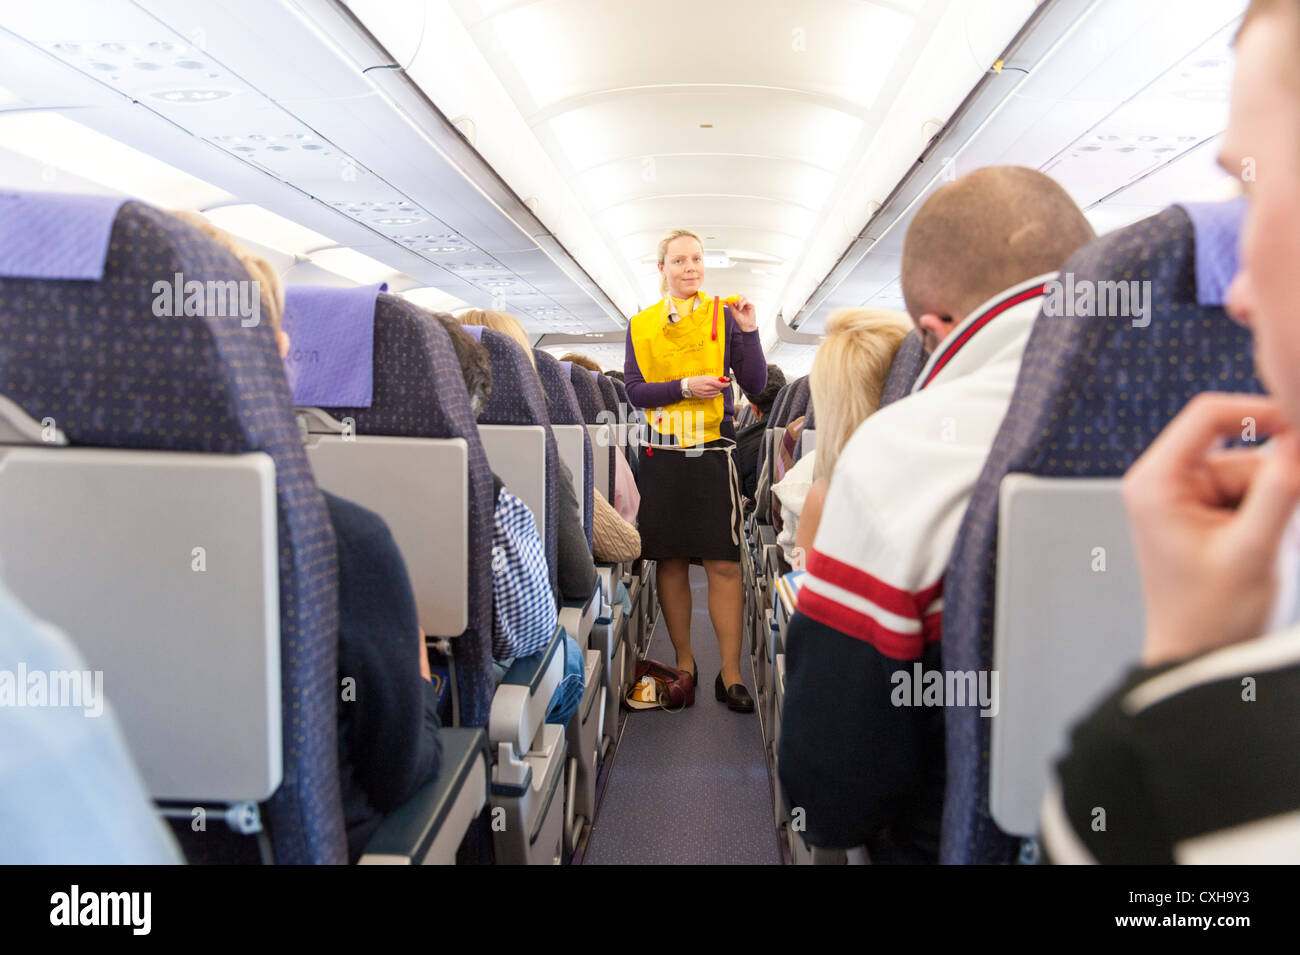 Monarch Airlines air stewardess going through preflight safety demonstration, England, UK - Stock Image